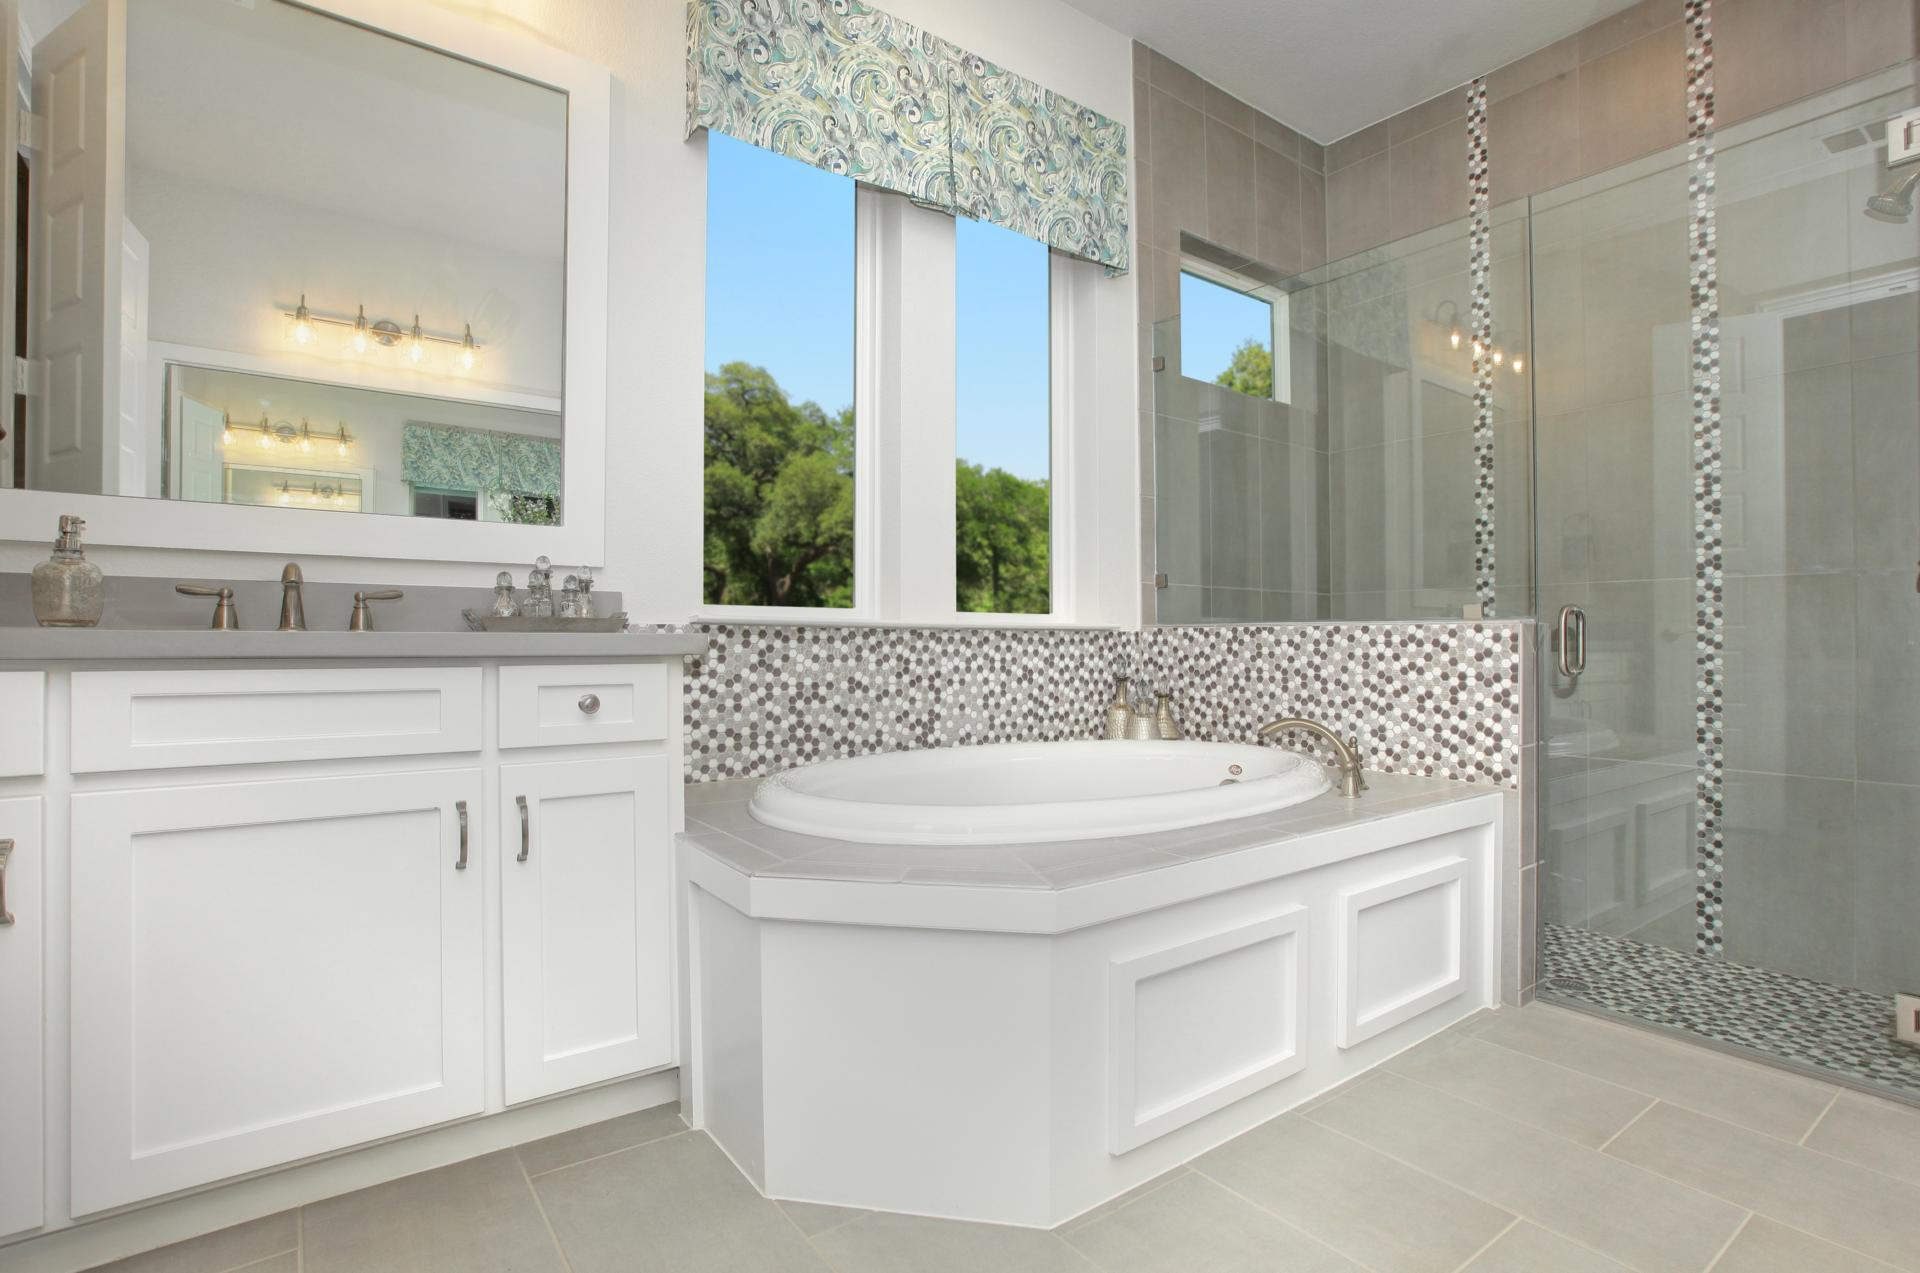 Bathroom featured in the Parkhill By Drees Custom Homes in Dallas, TX